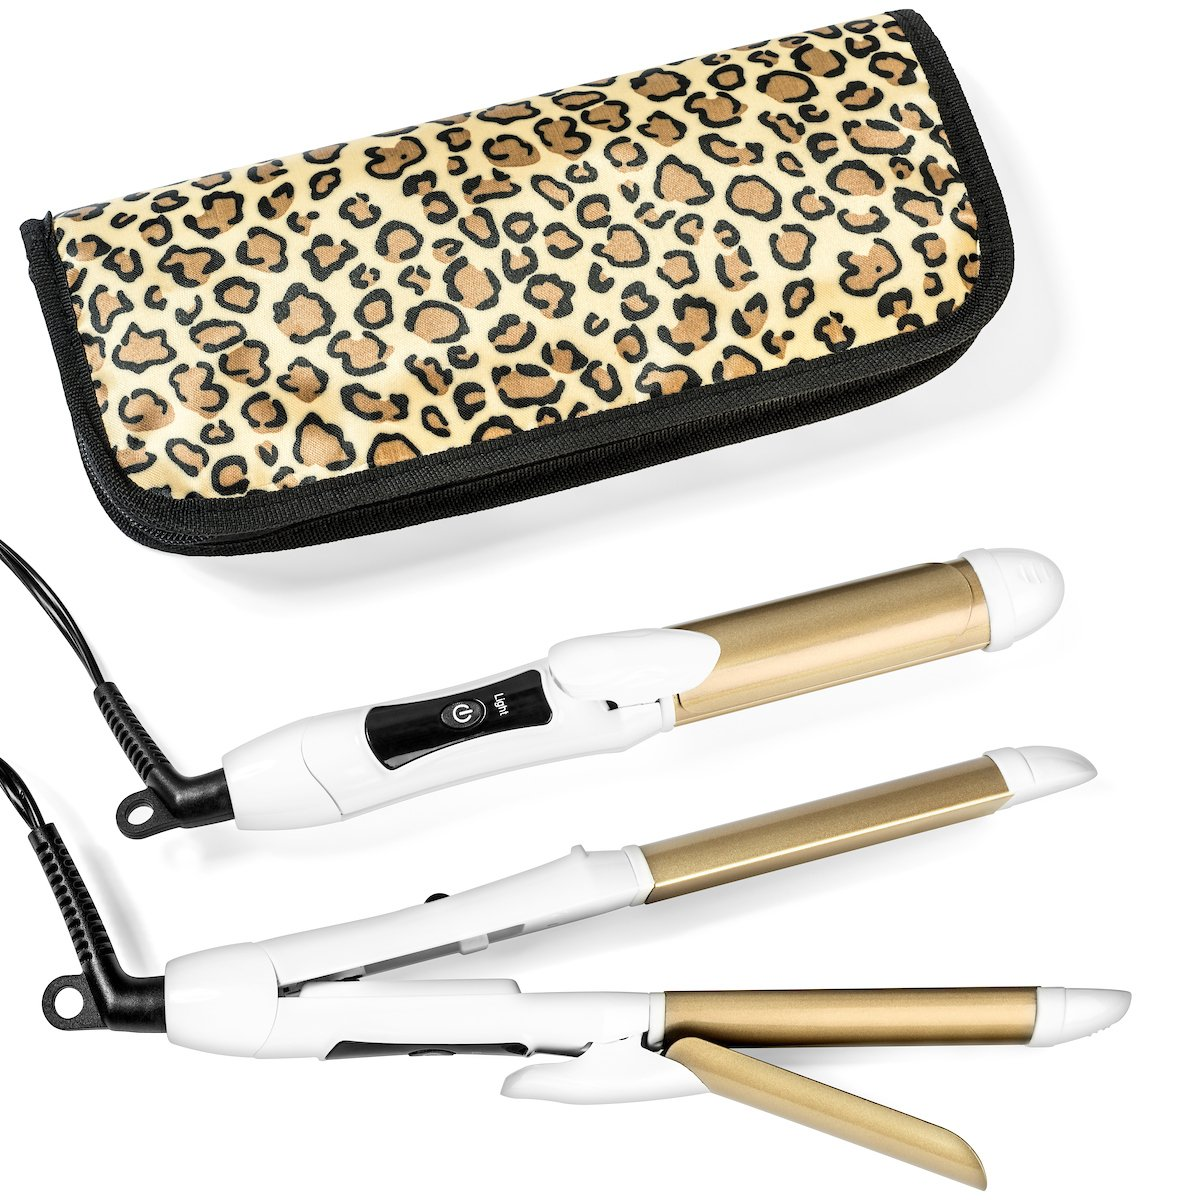 Travel Flat Iron 2-in-1 Mini Hair Straightener Curling Iron Dual Voltage 374 Degree Temperature Nano Titanium - Insulated Carry Bag Include by 6th Sense Styling Technology (Image #1)